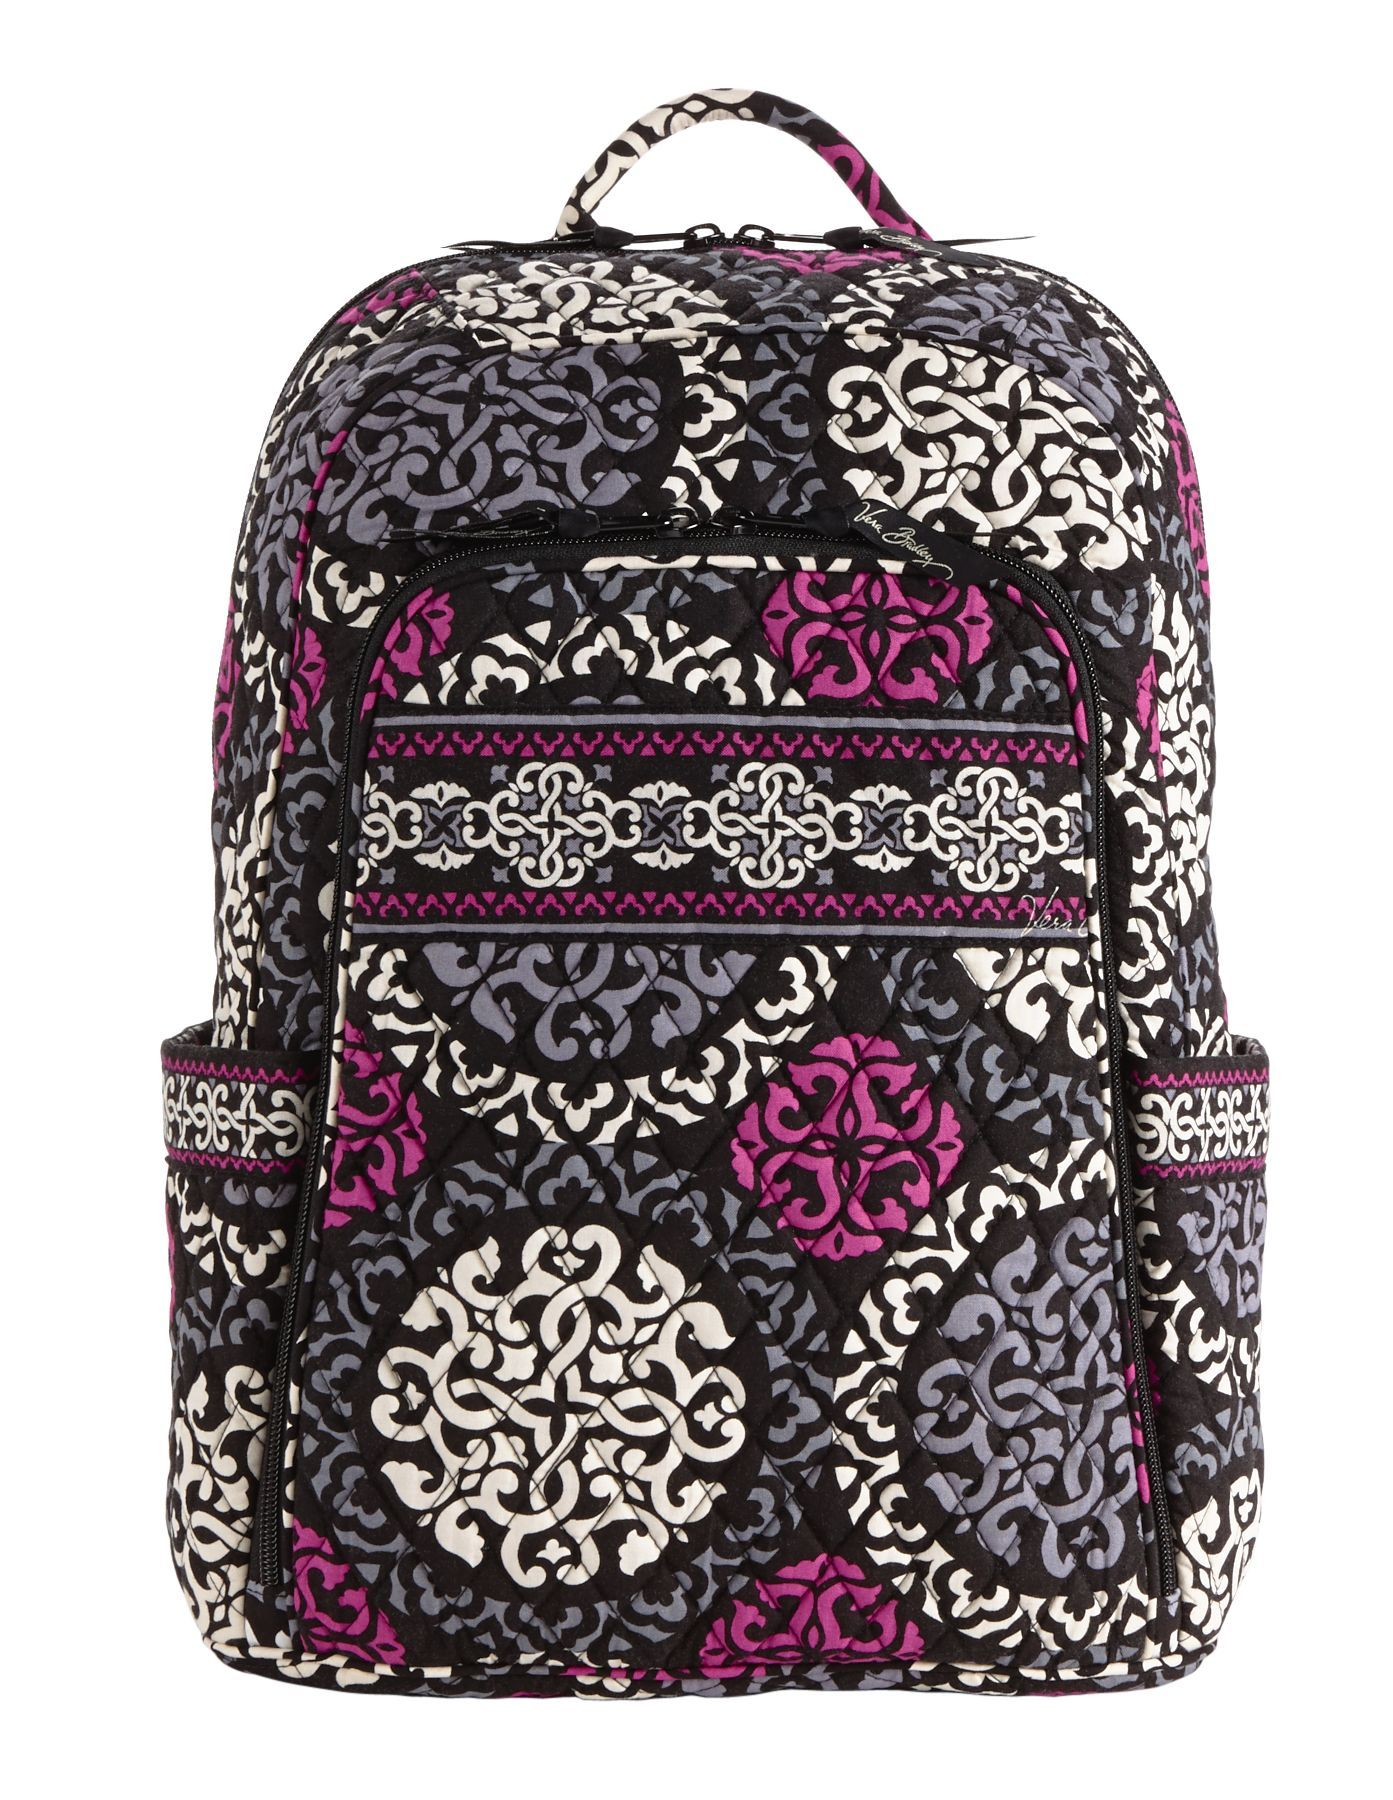 Vera Bradley Laptop Backpack in Canterberry Magenta Vera Bradley Online  Clearance  DEALS 70% Off ae654f484c2ac